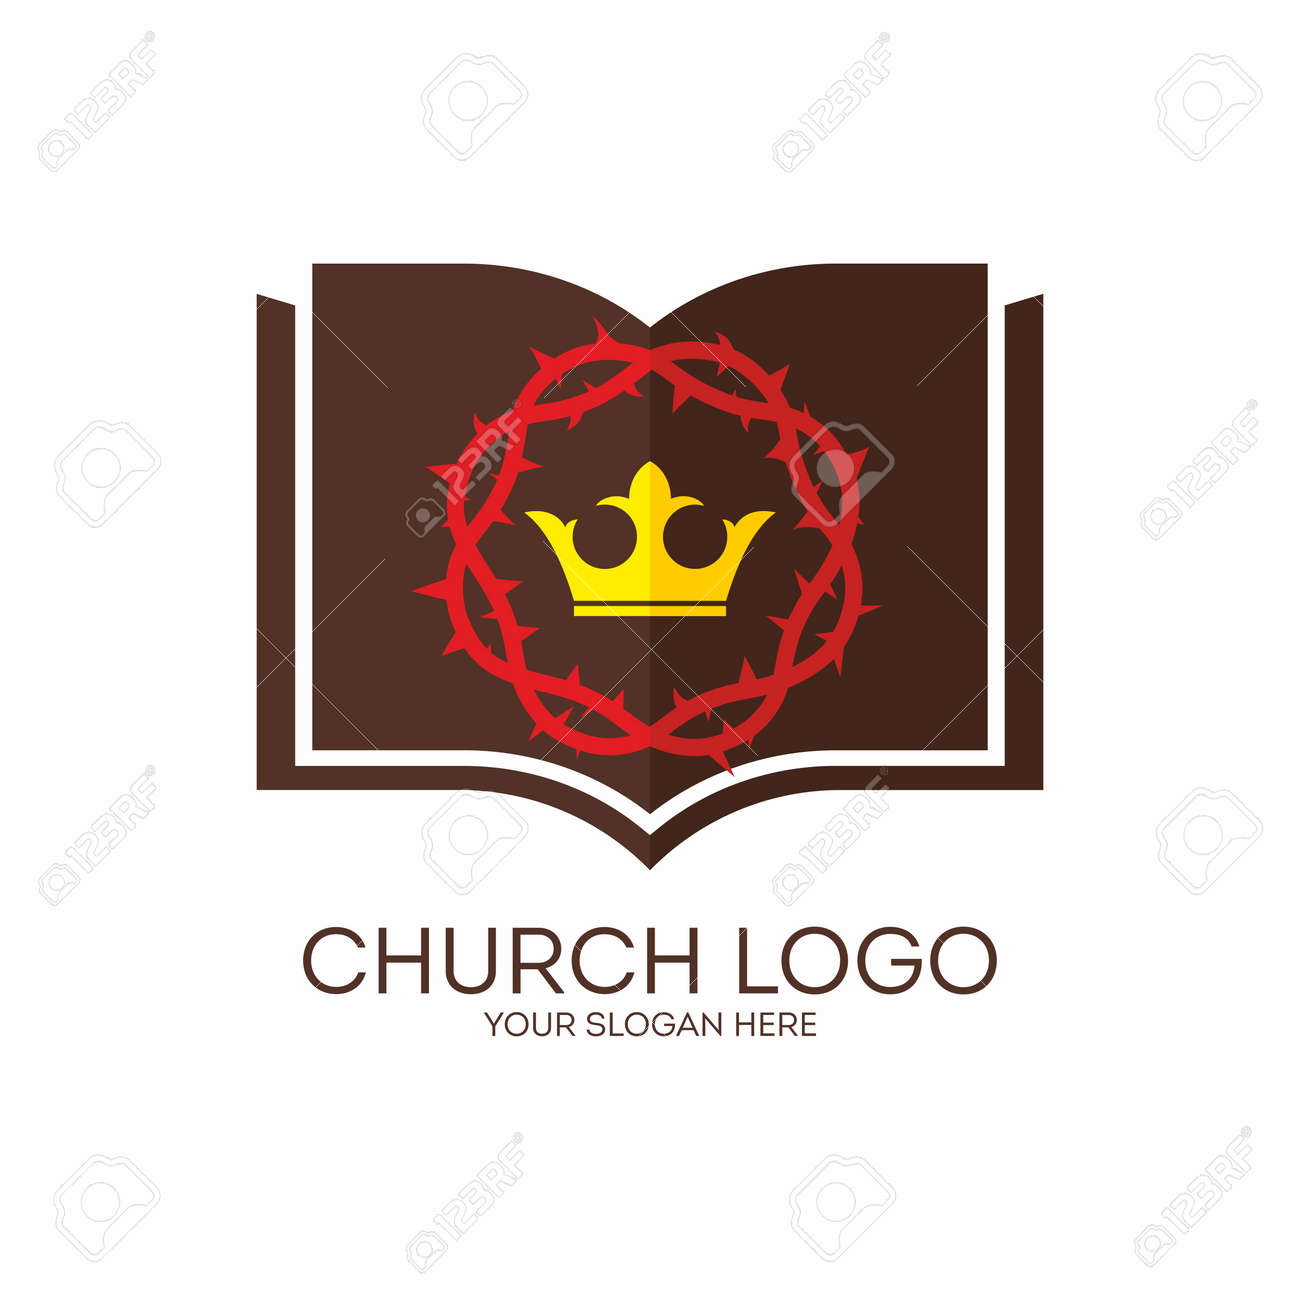 2,318 Church Logo Icon Stock Vector Illustration And Royalty Free ...